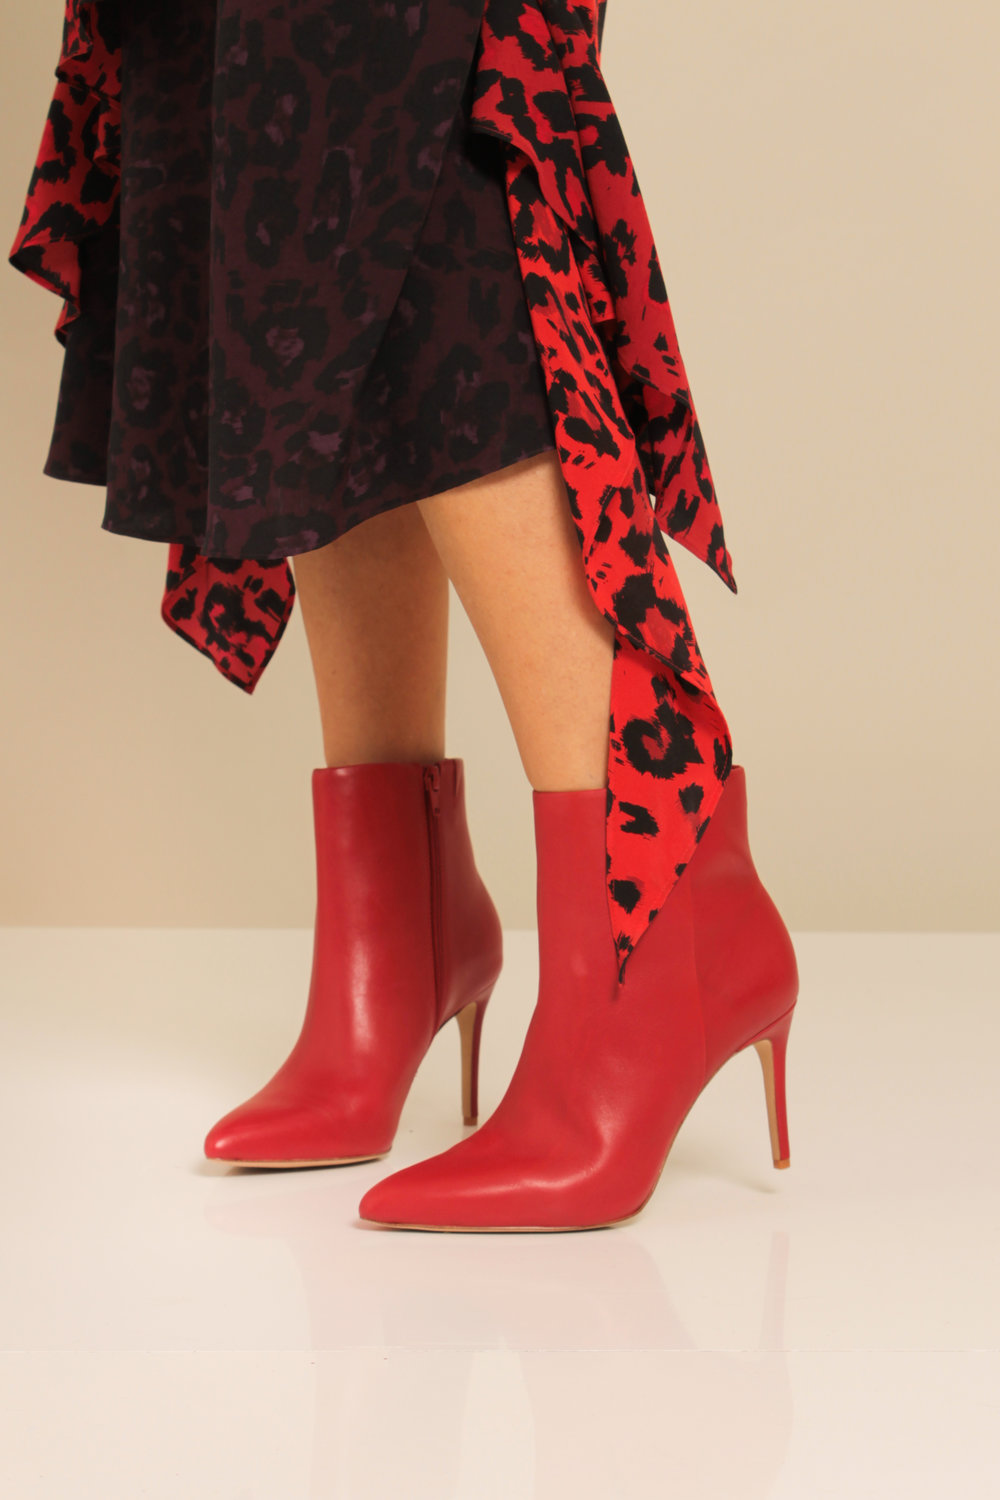 Boots: was £110 now £45.98  Aldo